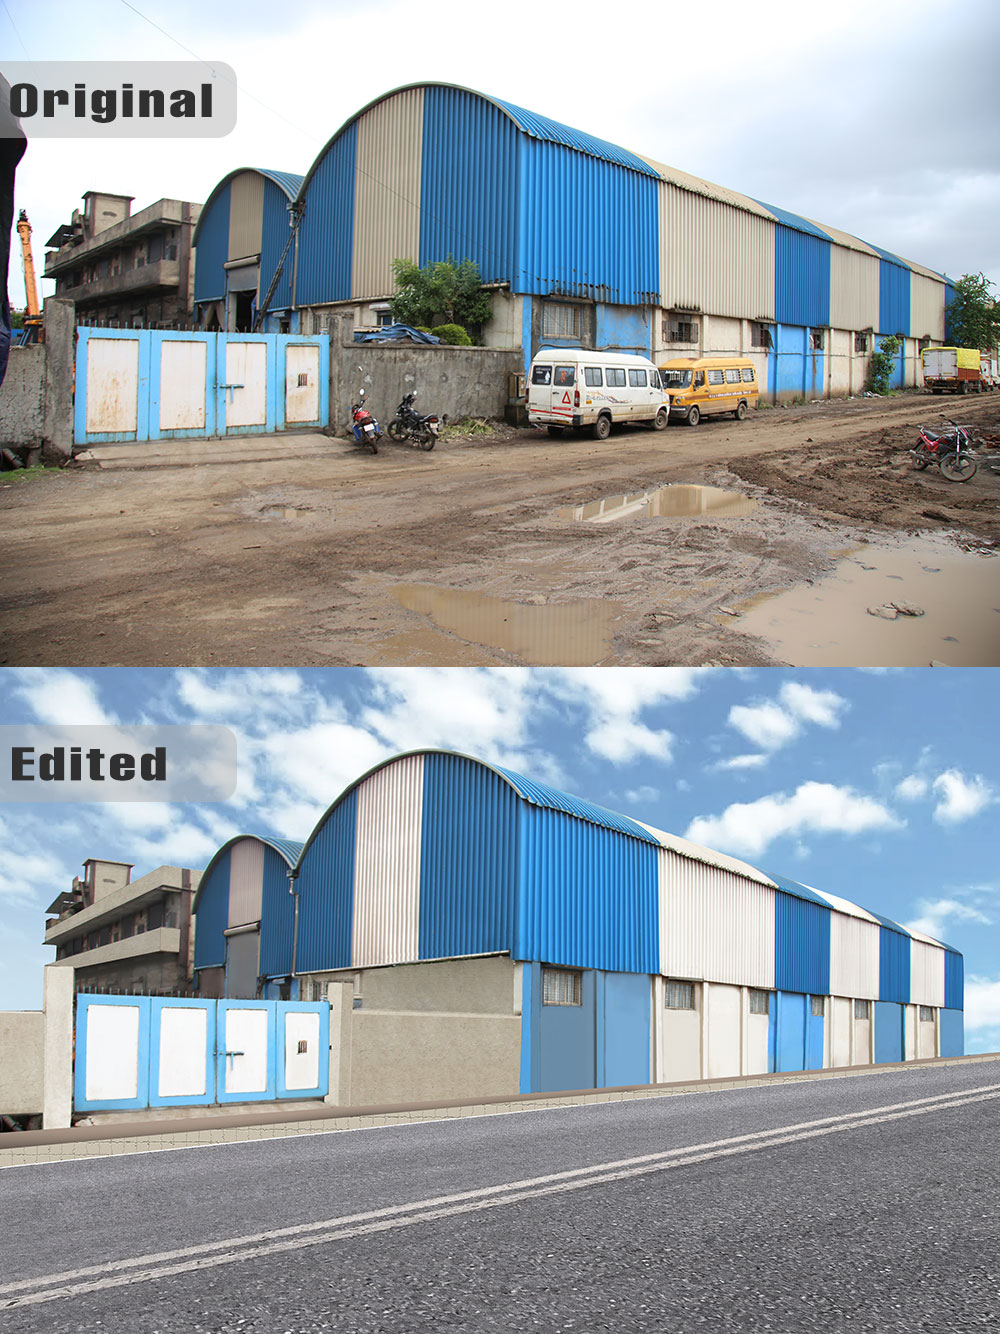 Factory Exterior - Bhiwandi retouched completely